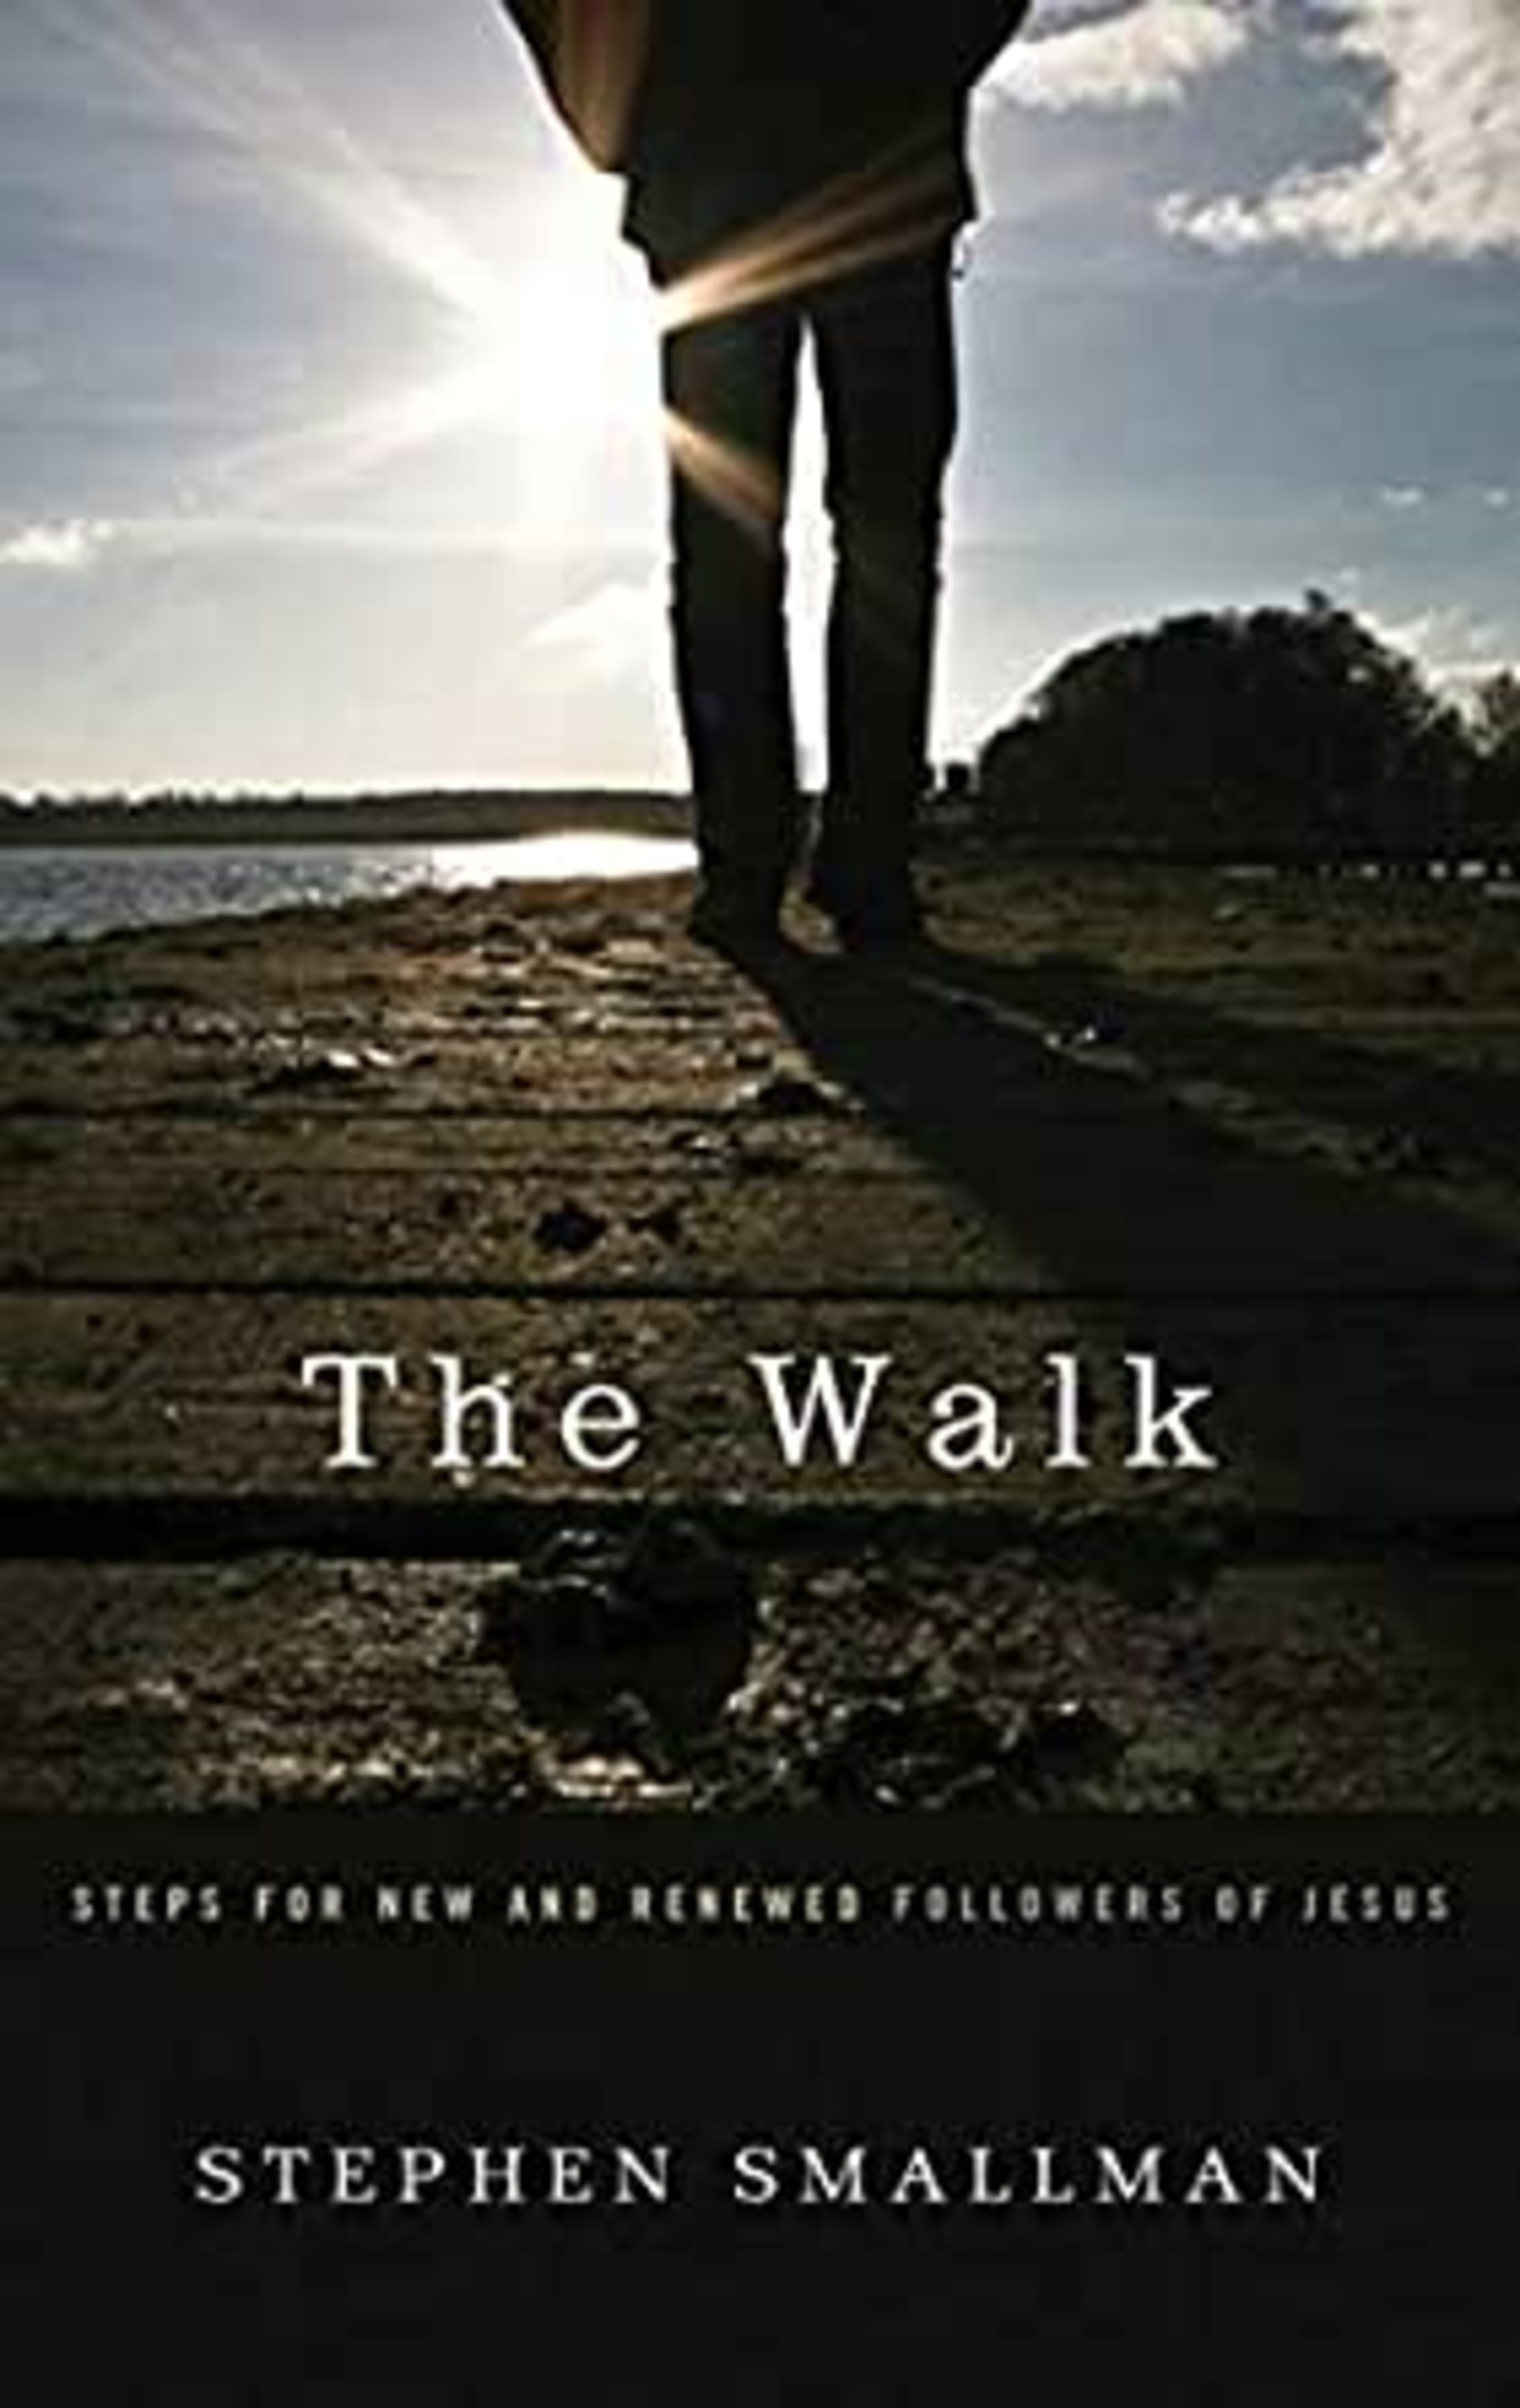 The Walk: Steps for New and Renewed Followers of Jesus | Stephen Smallman